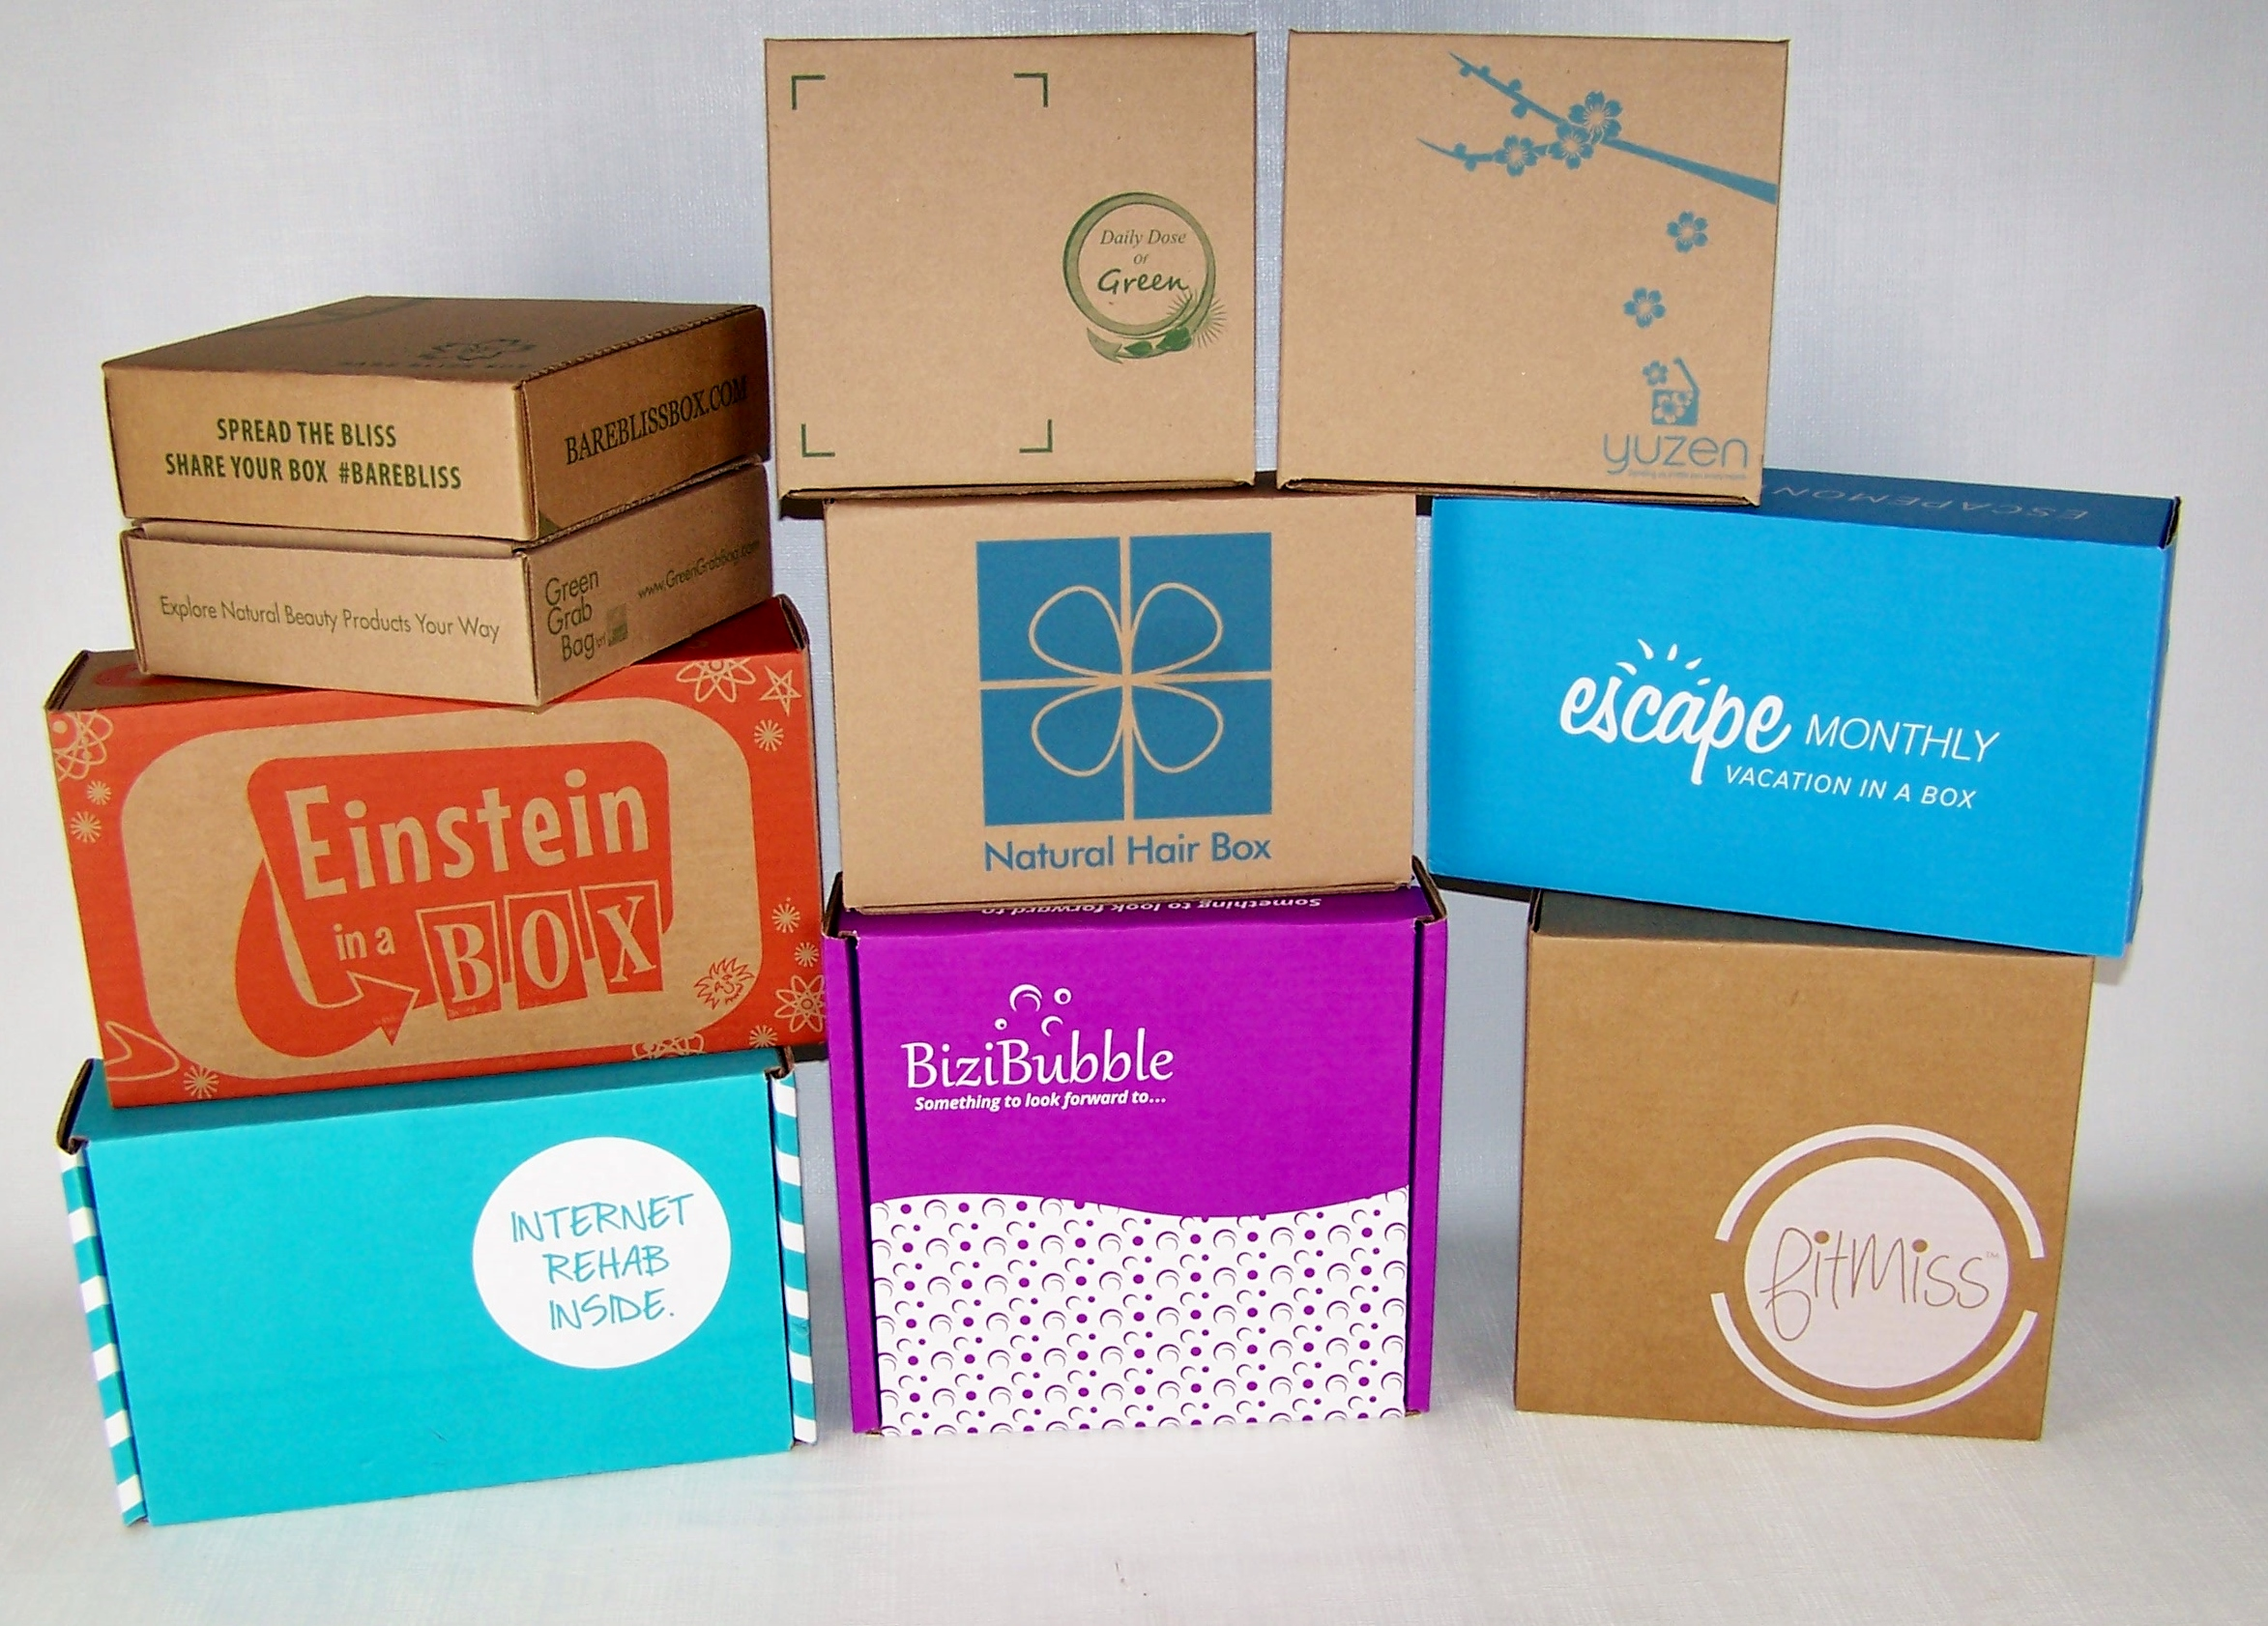 Thinking Inside the Box: How to Start a Subscription Box Business